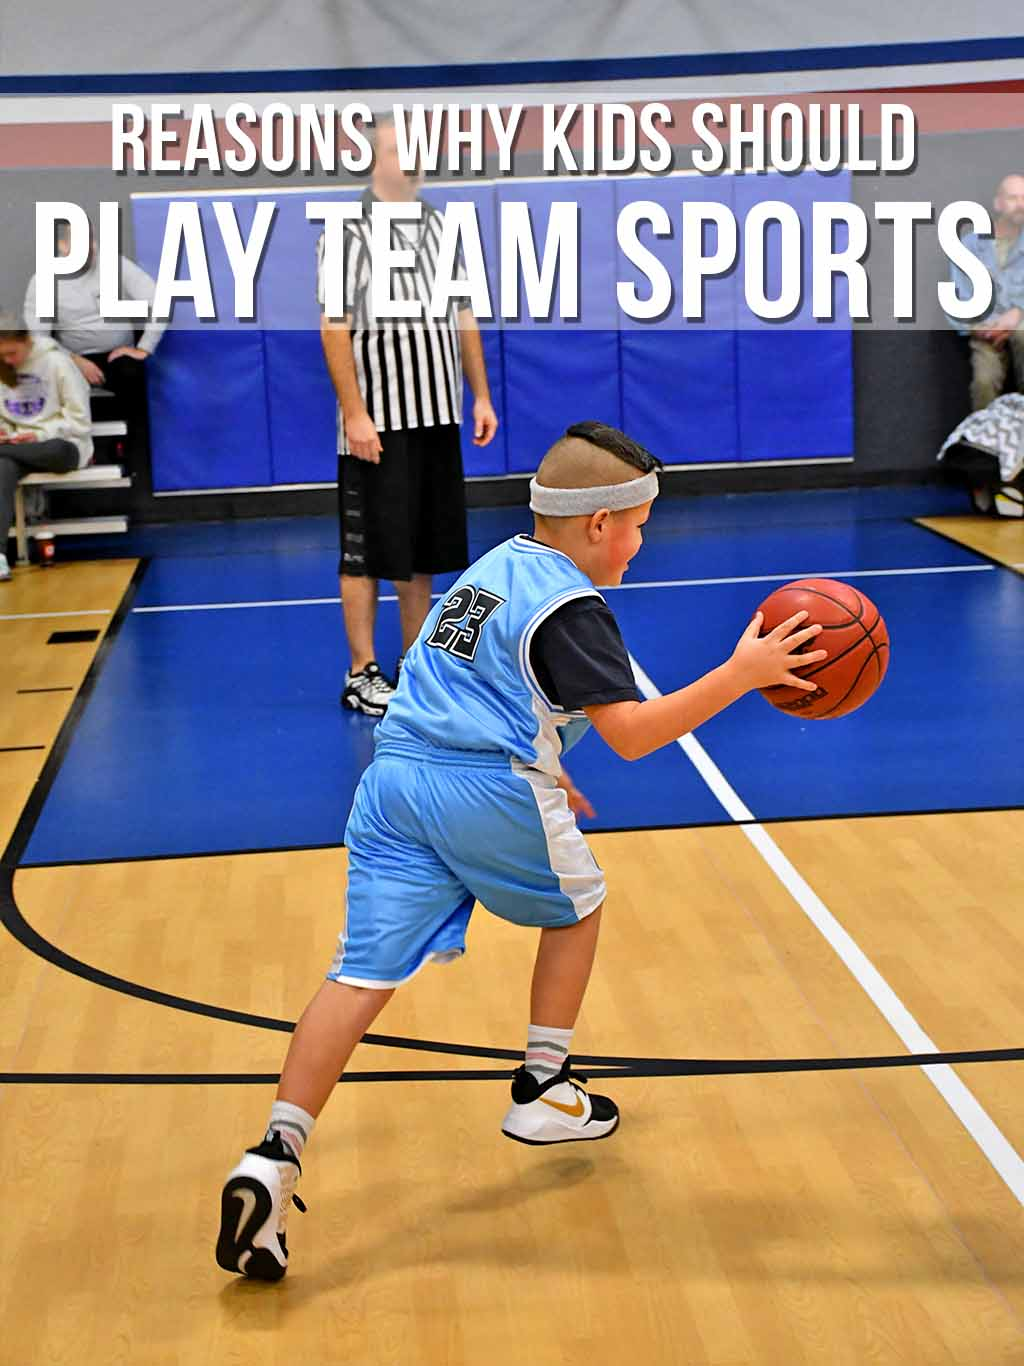 Why kids should play team sports